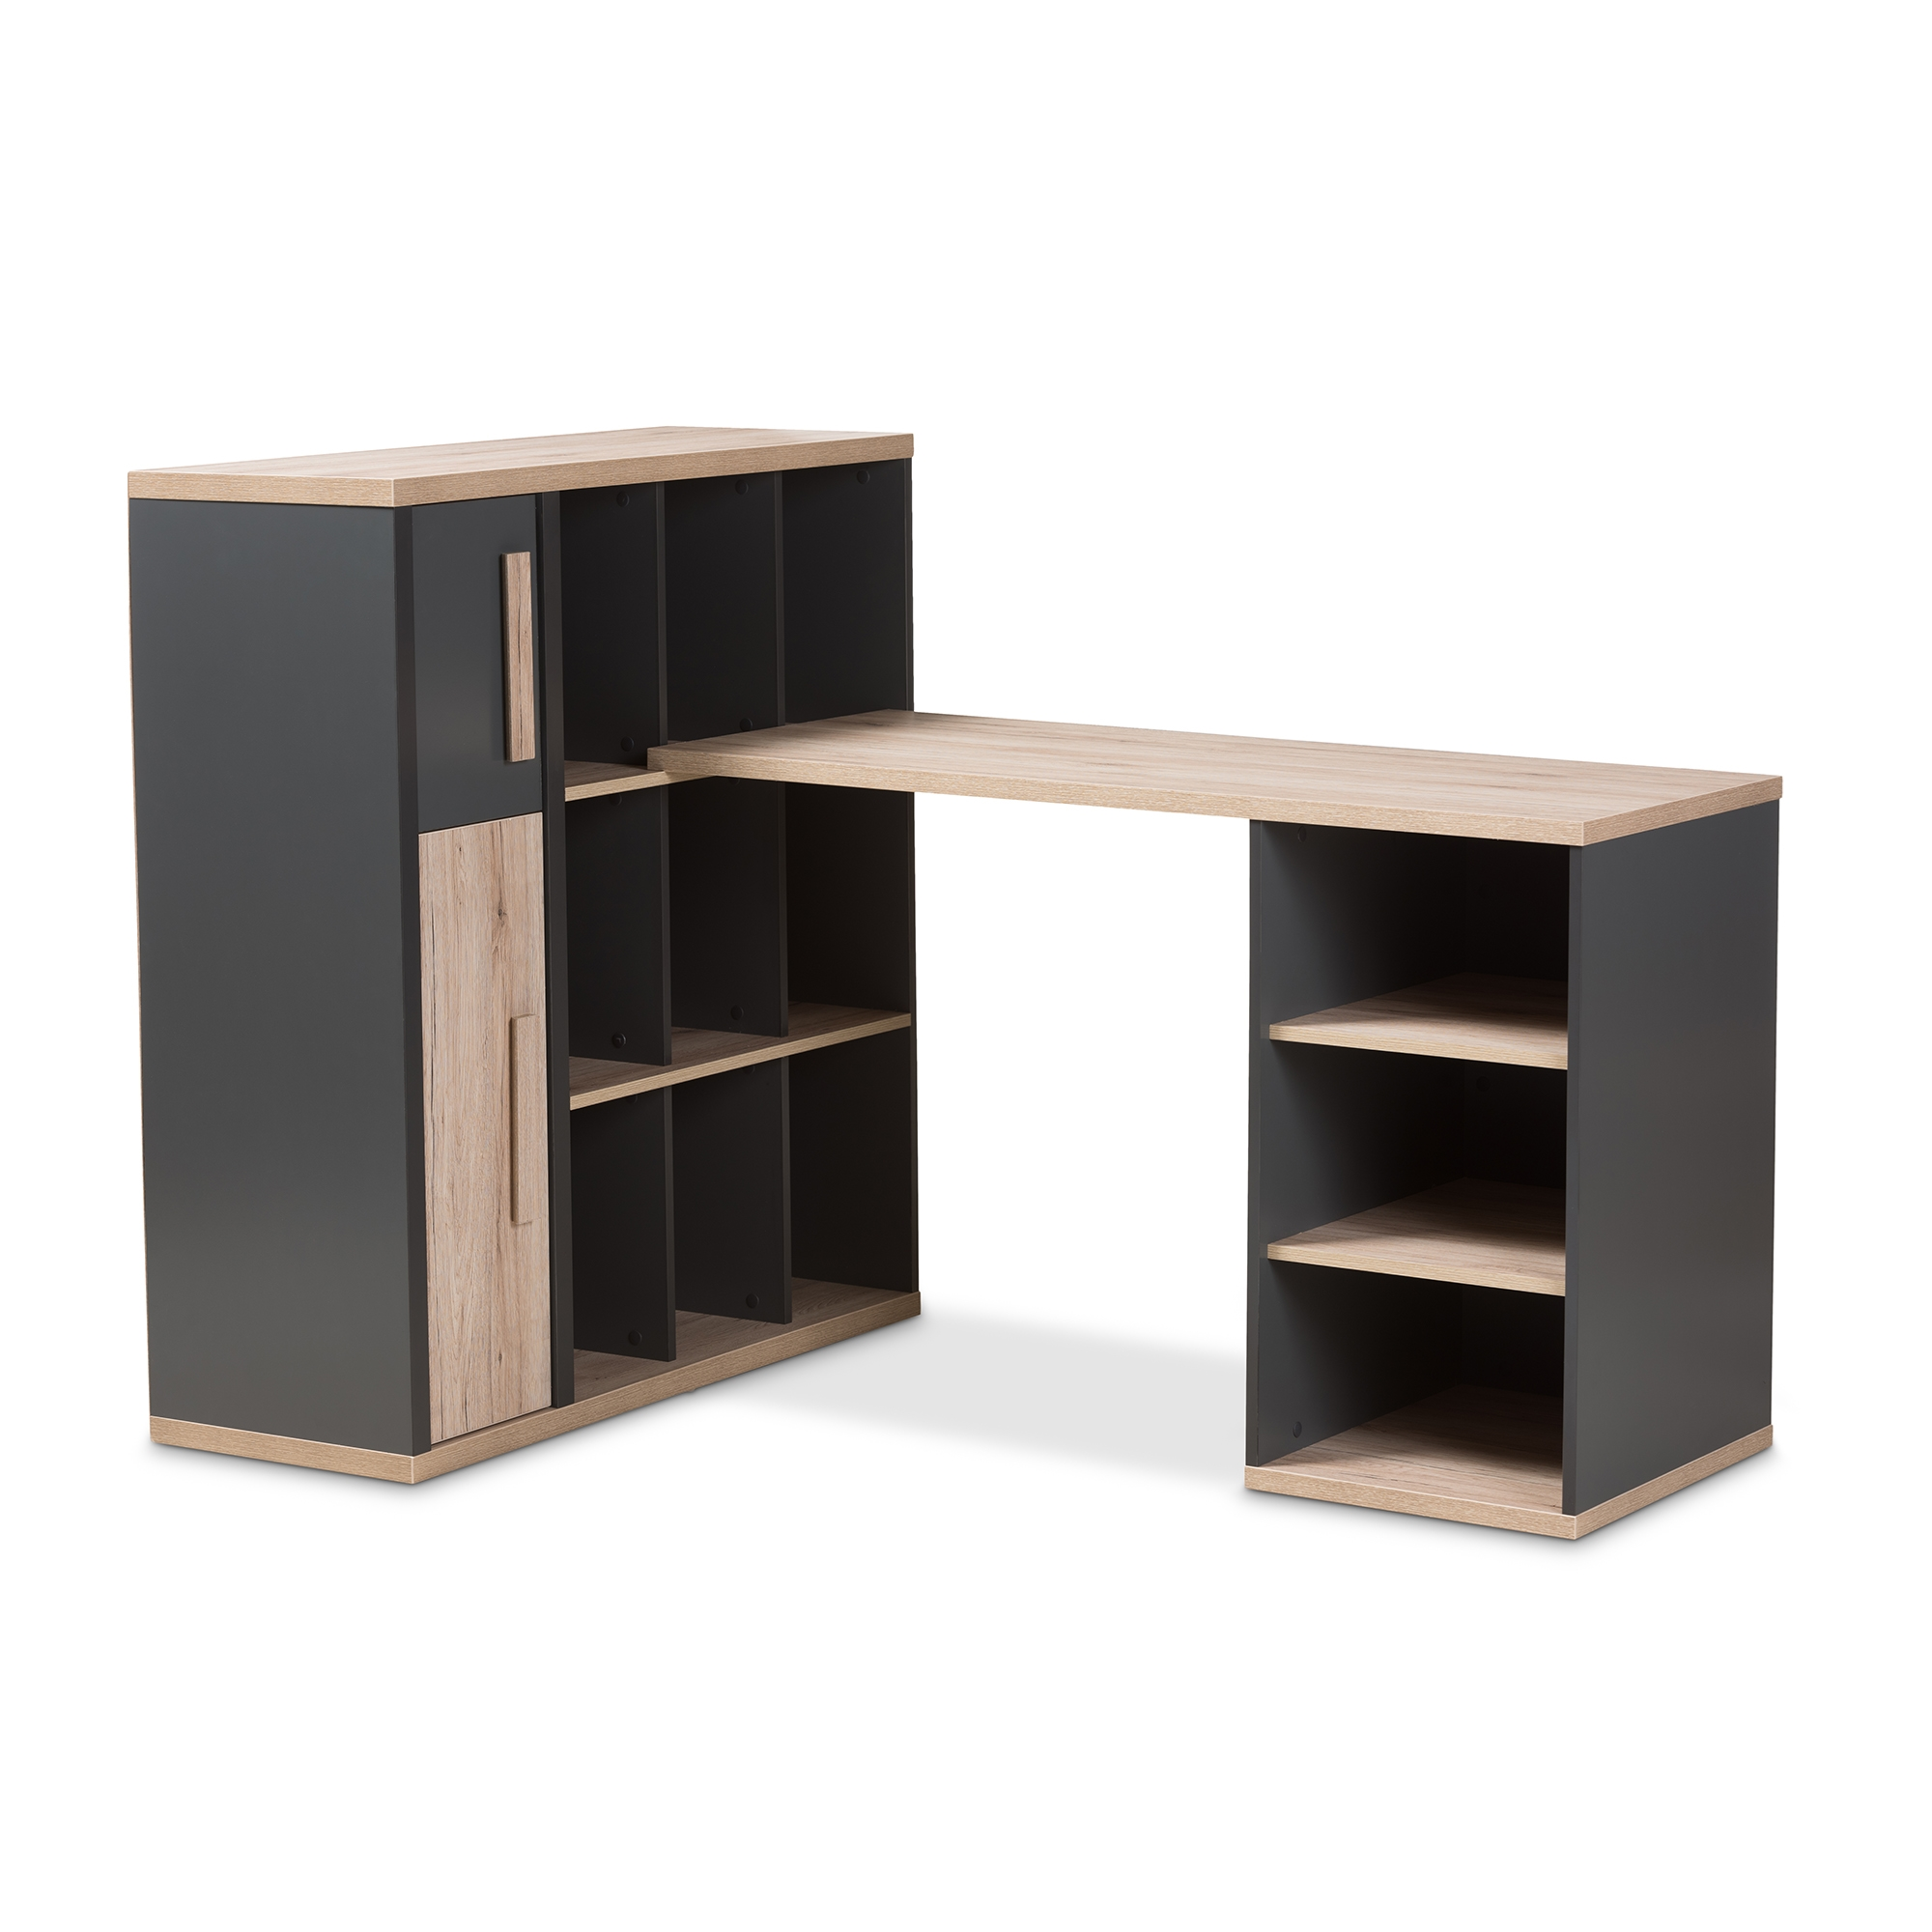 Baxton Studio Pandora Modern And Contemporary Dark Grey Light Brown Two Tone Study Desk With Built In Shelving Unit